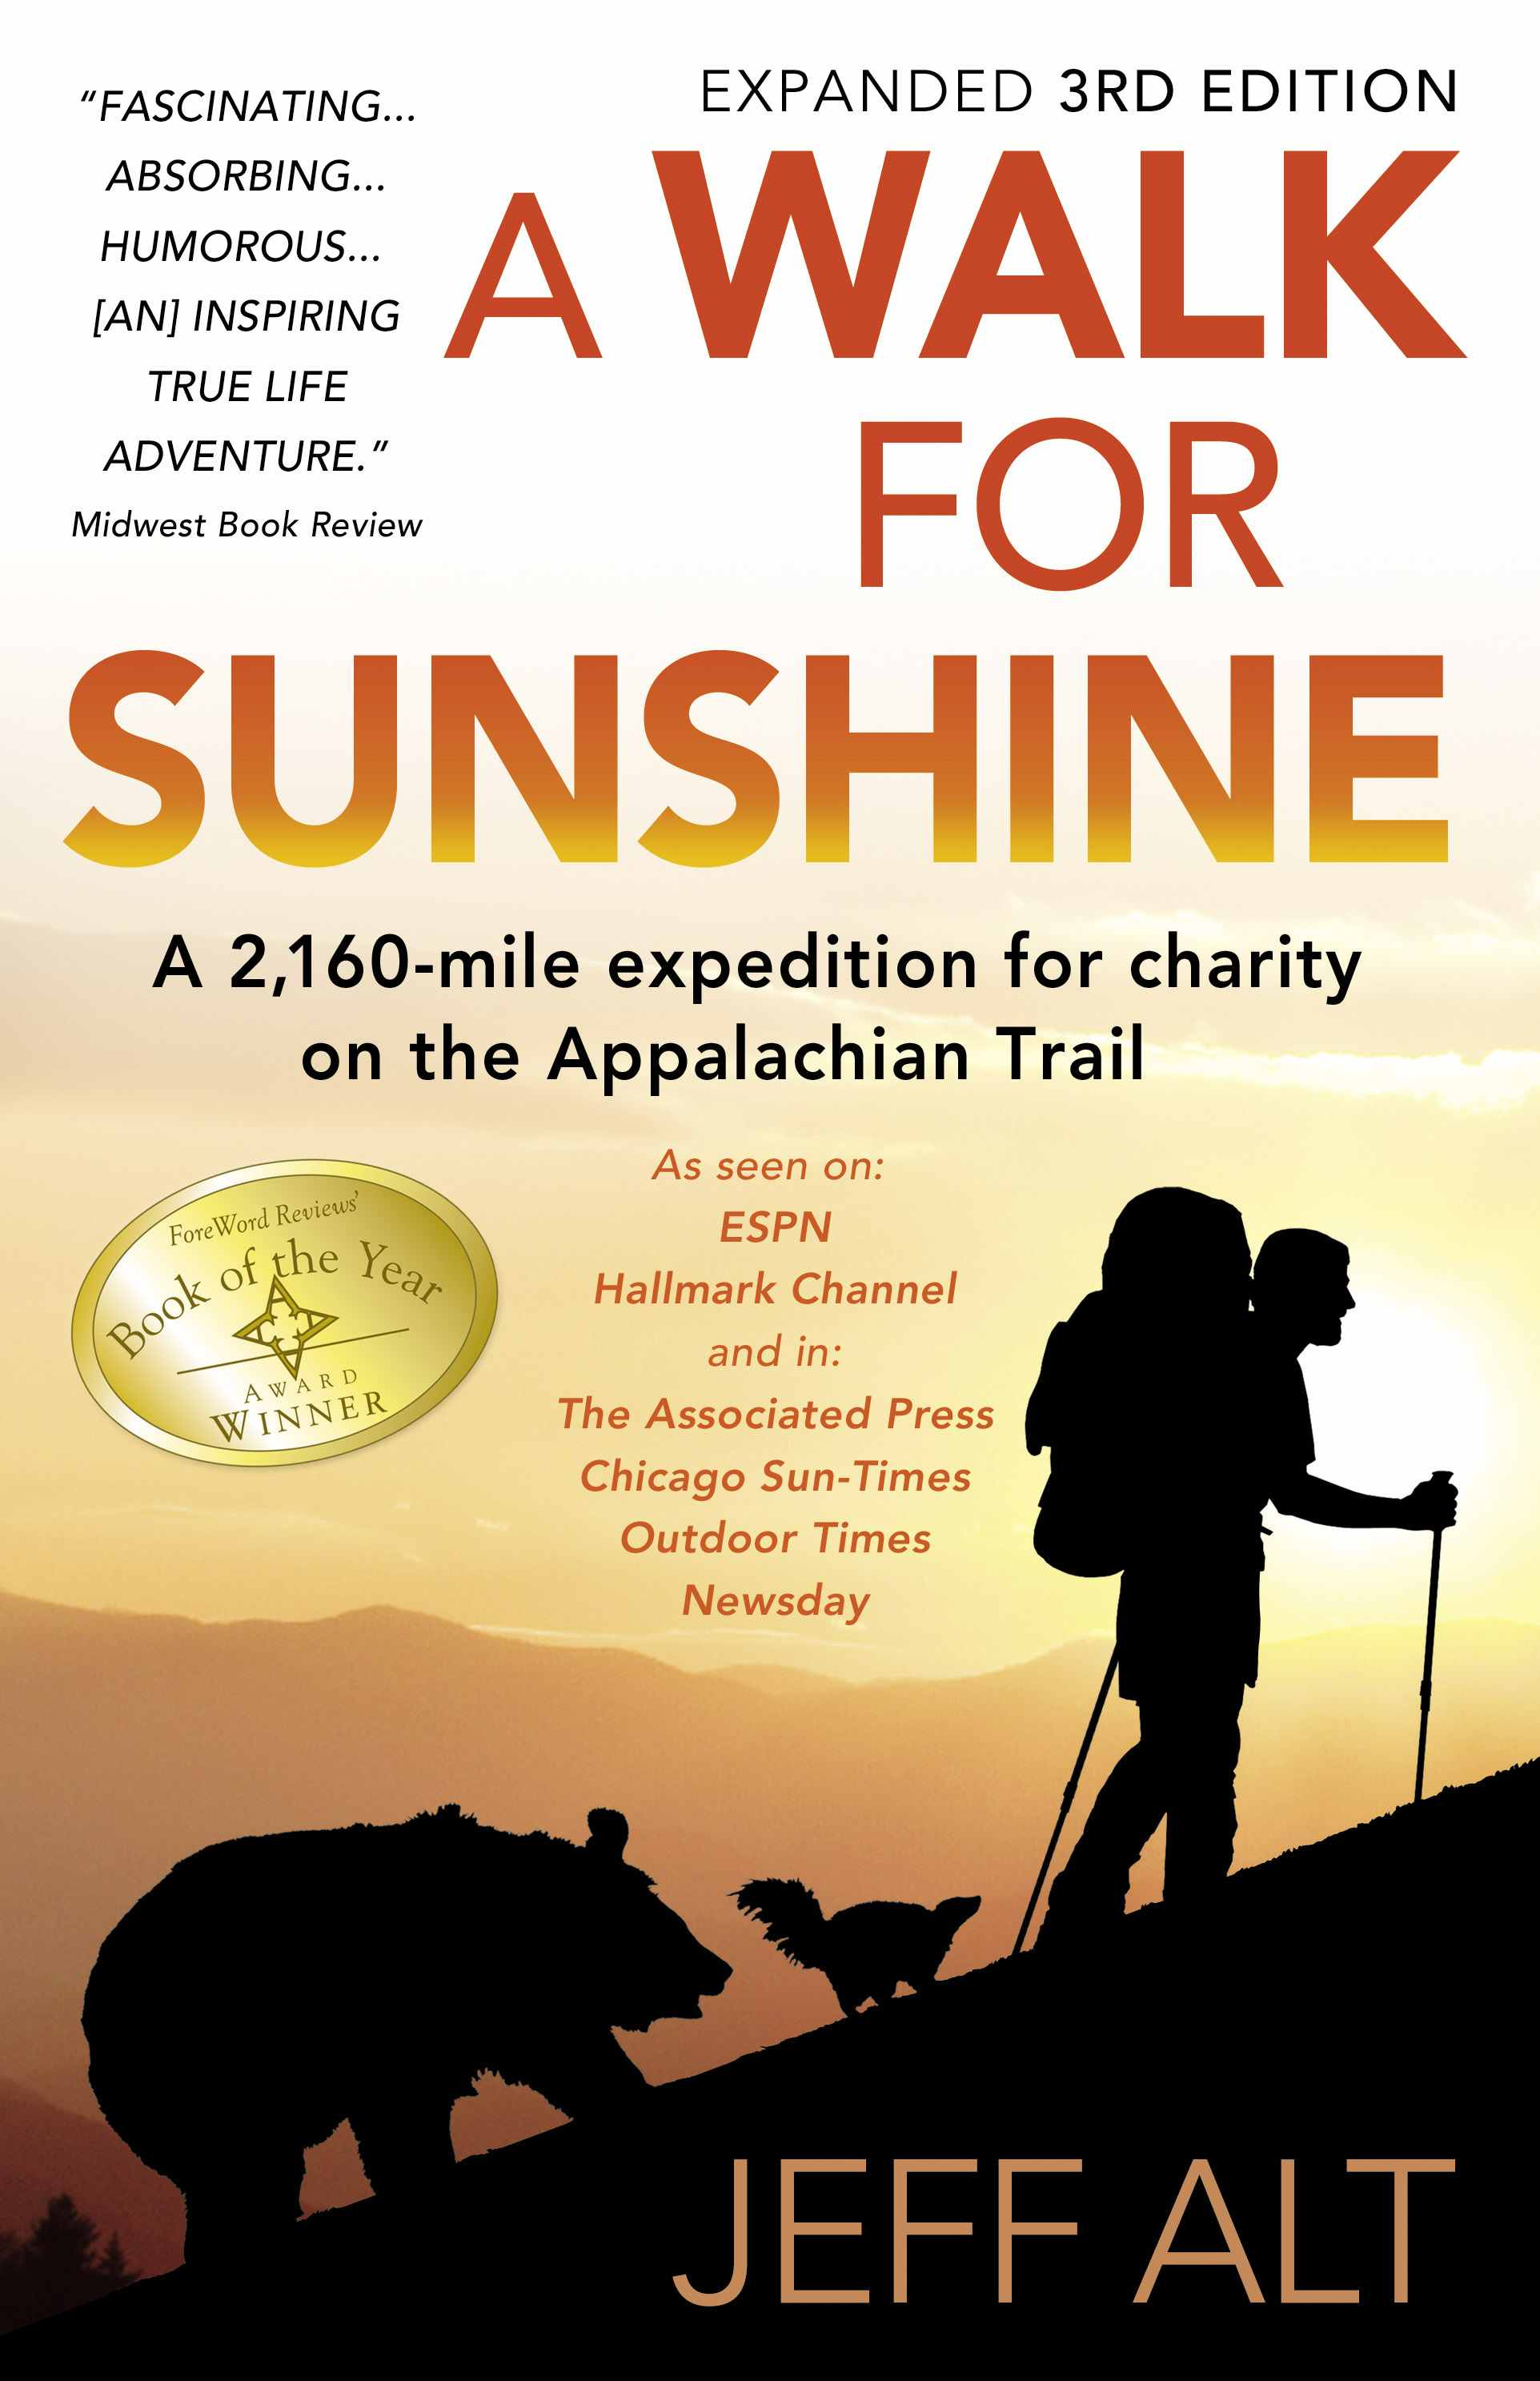 A Walk For Sunshine- 3rd Edition